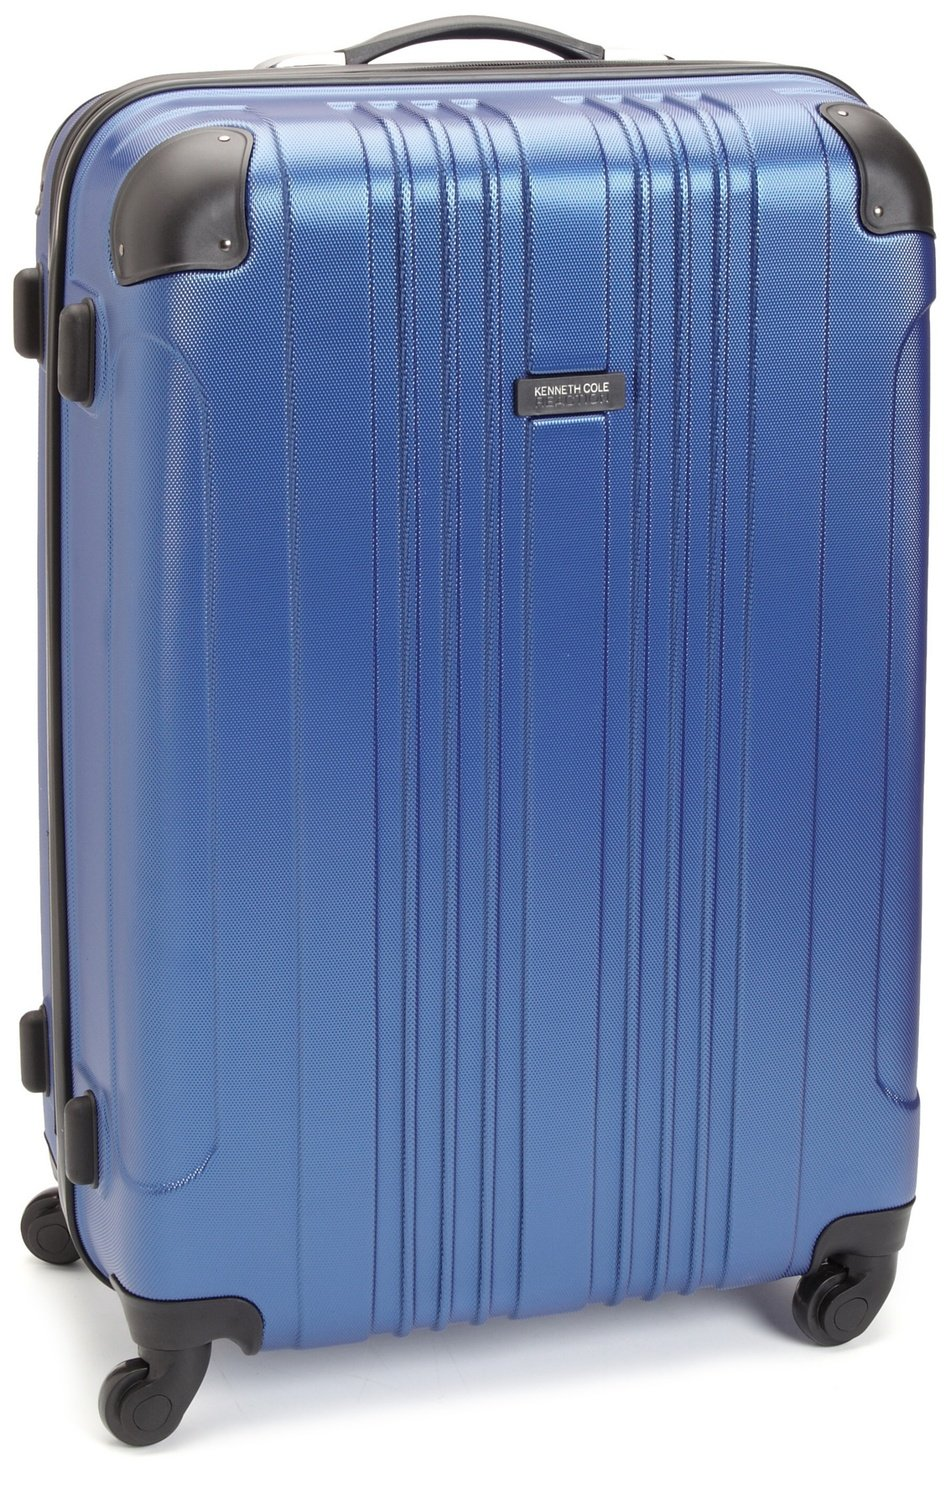 Kenneth Cole Reaction 28' Let It All Out Luggage, Suitcase in Cobalt